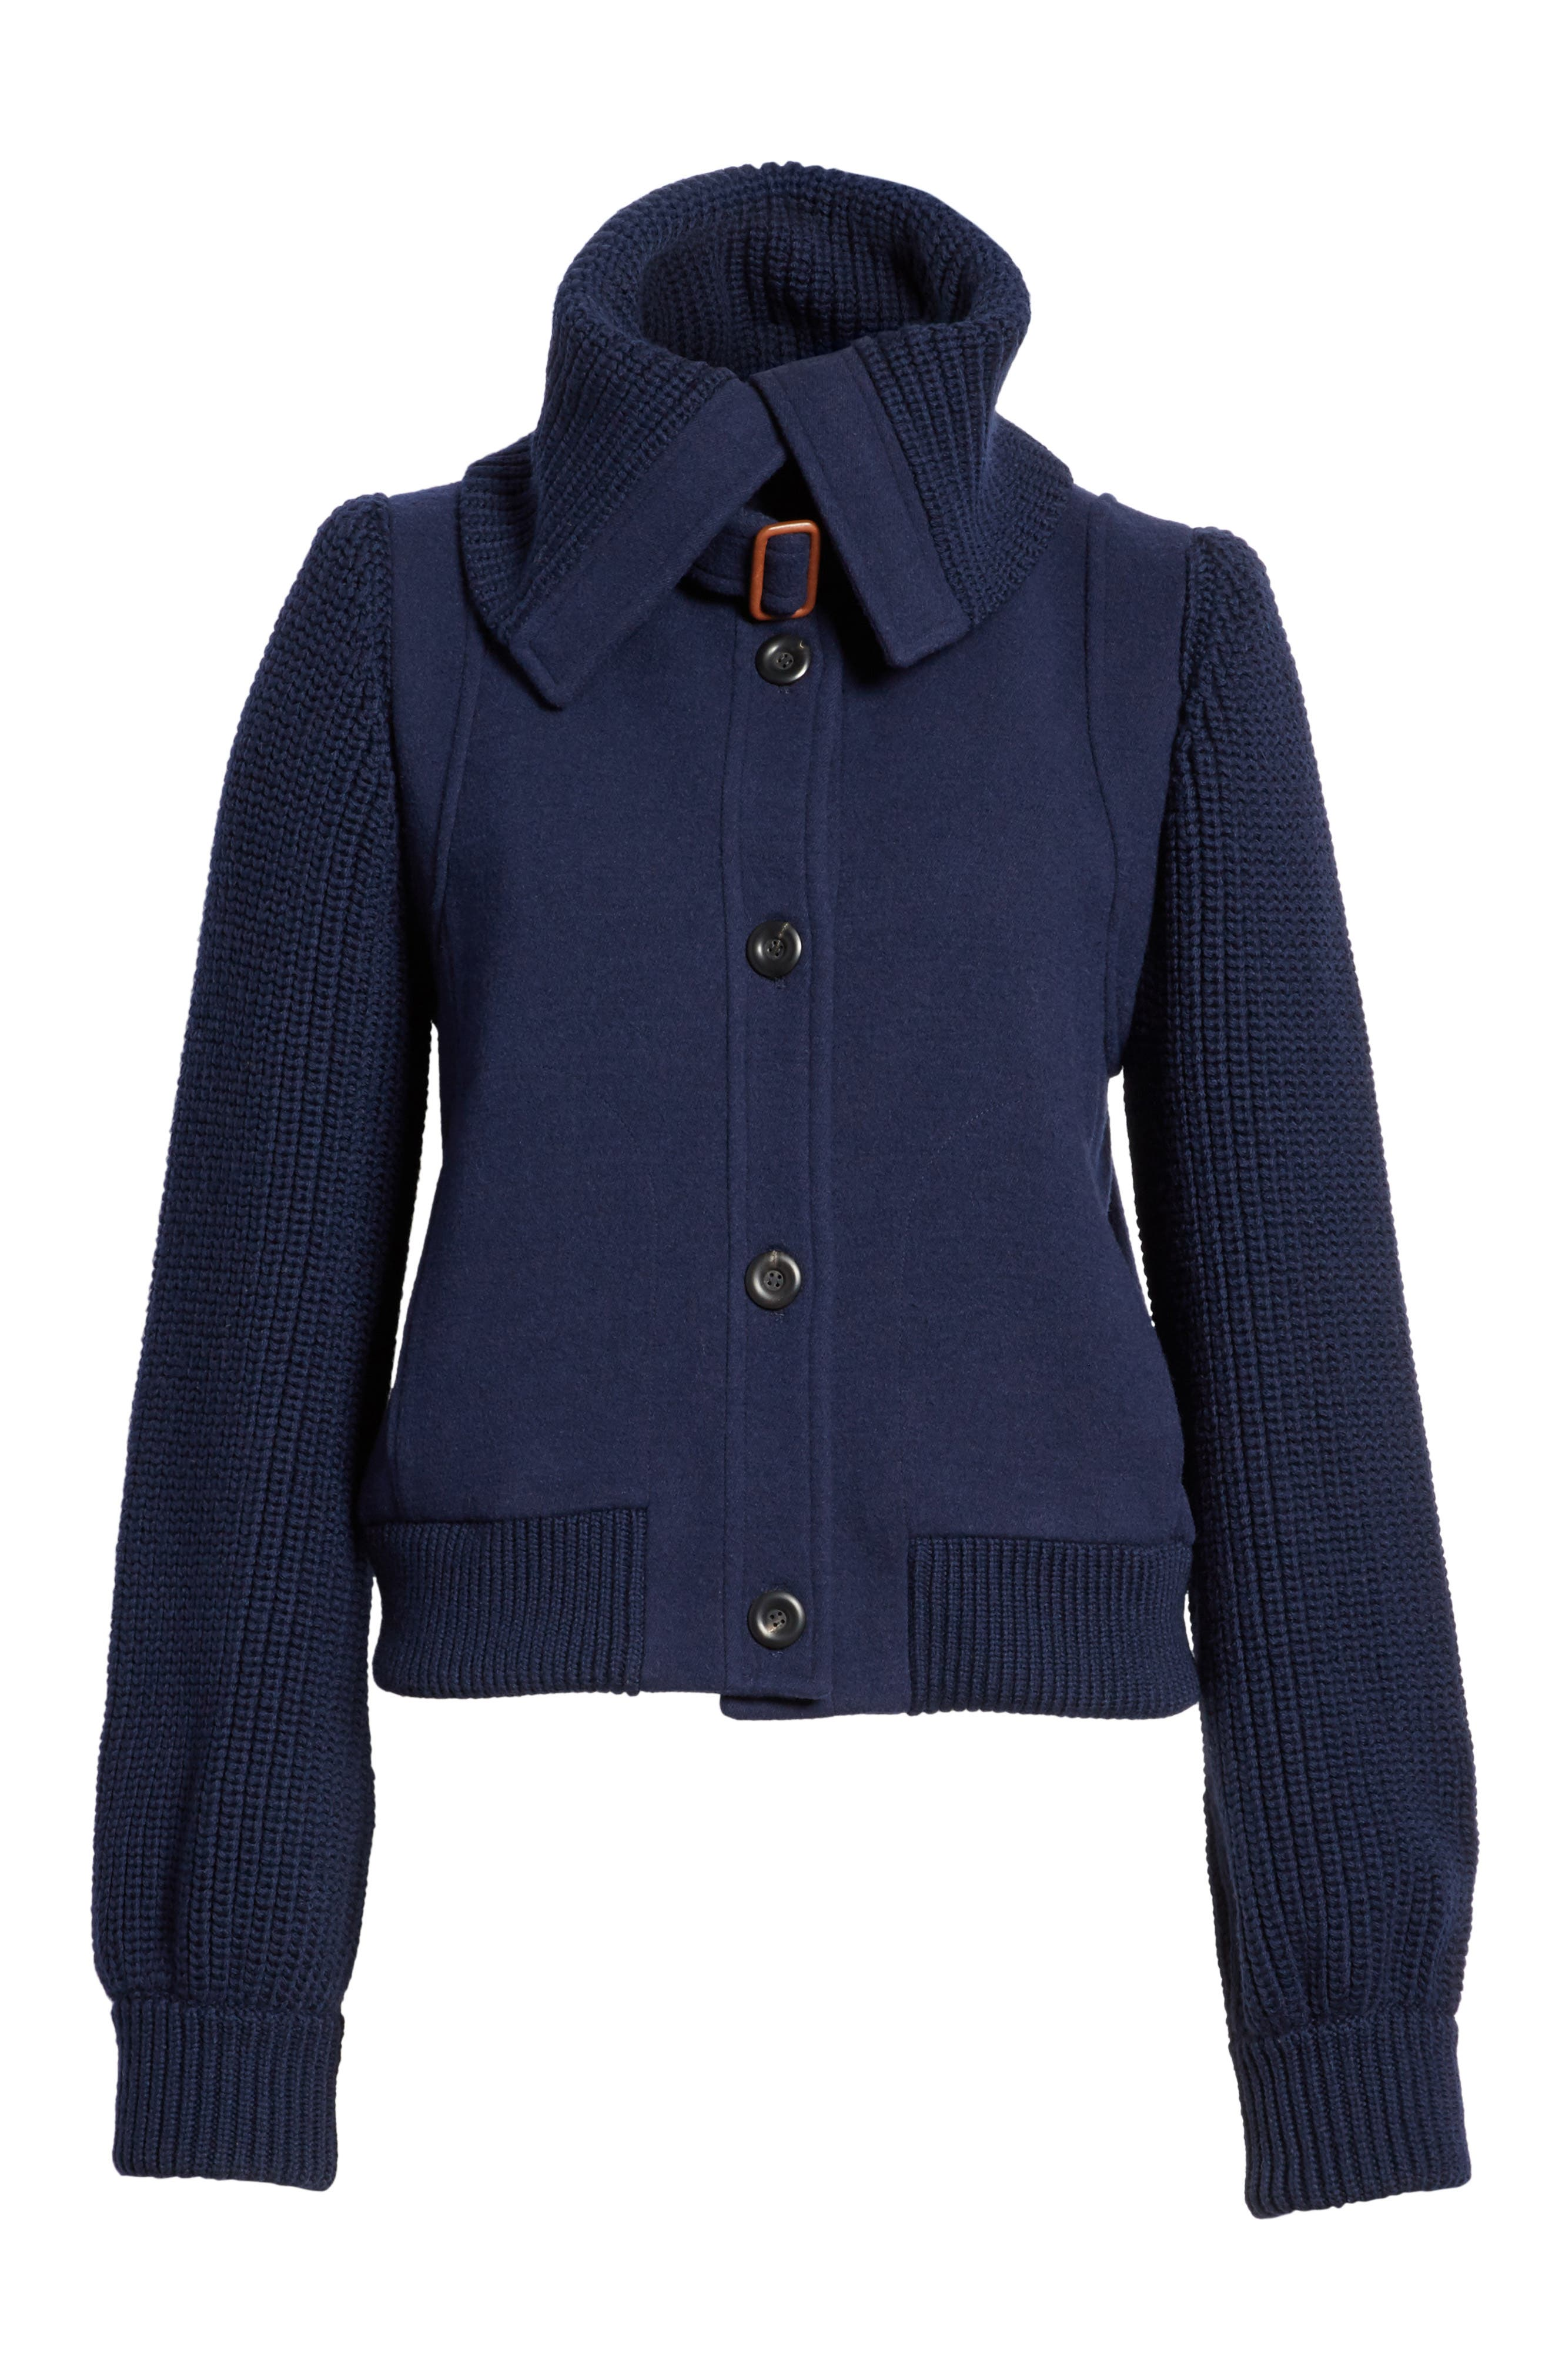 Brushed Stretch Wool Coat,                             Alternate thumbnail 5, color,                             451